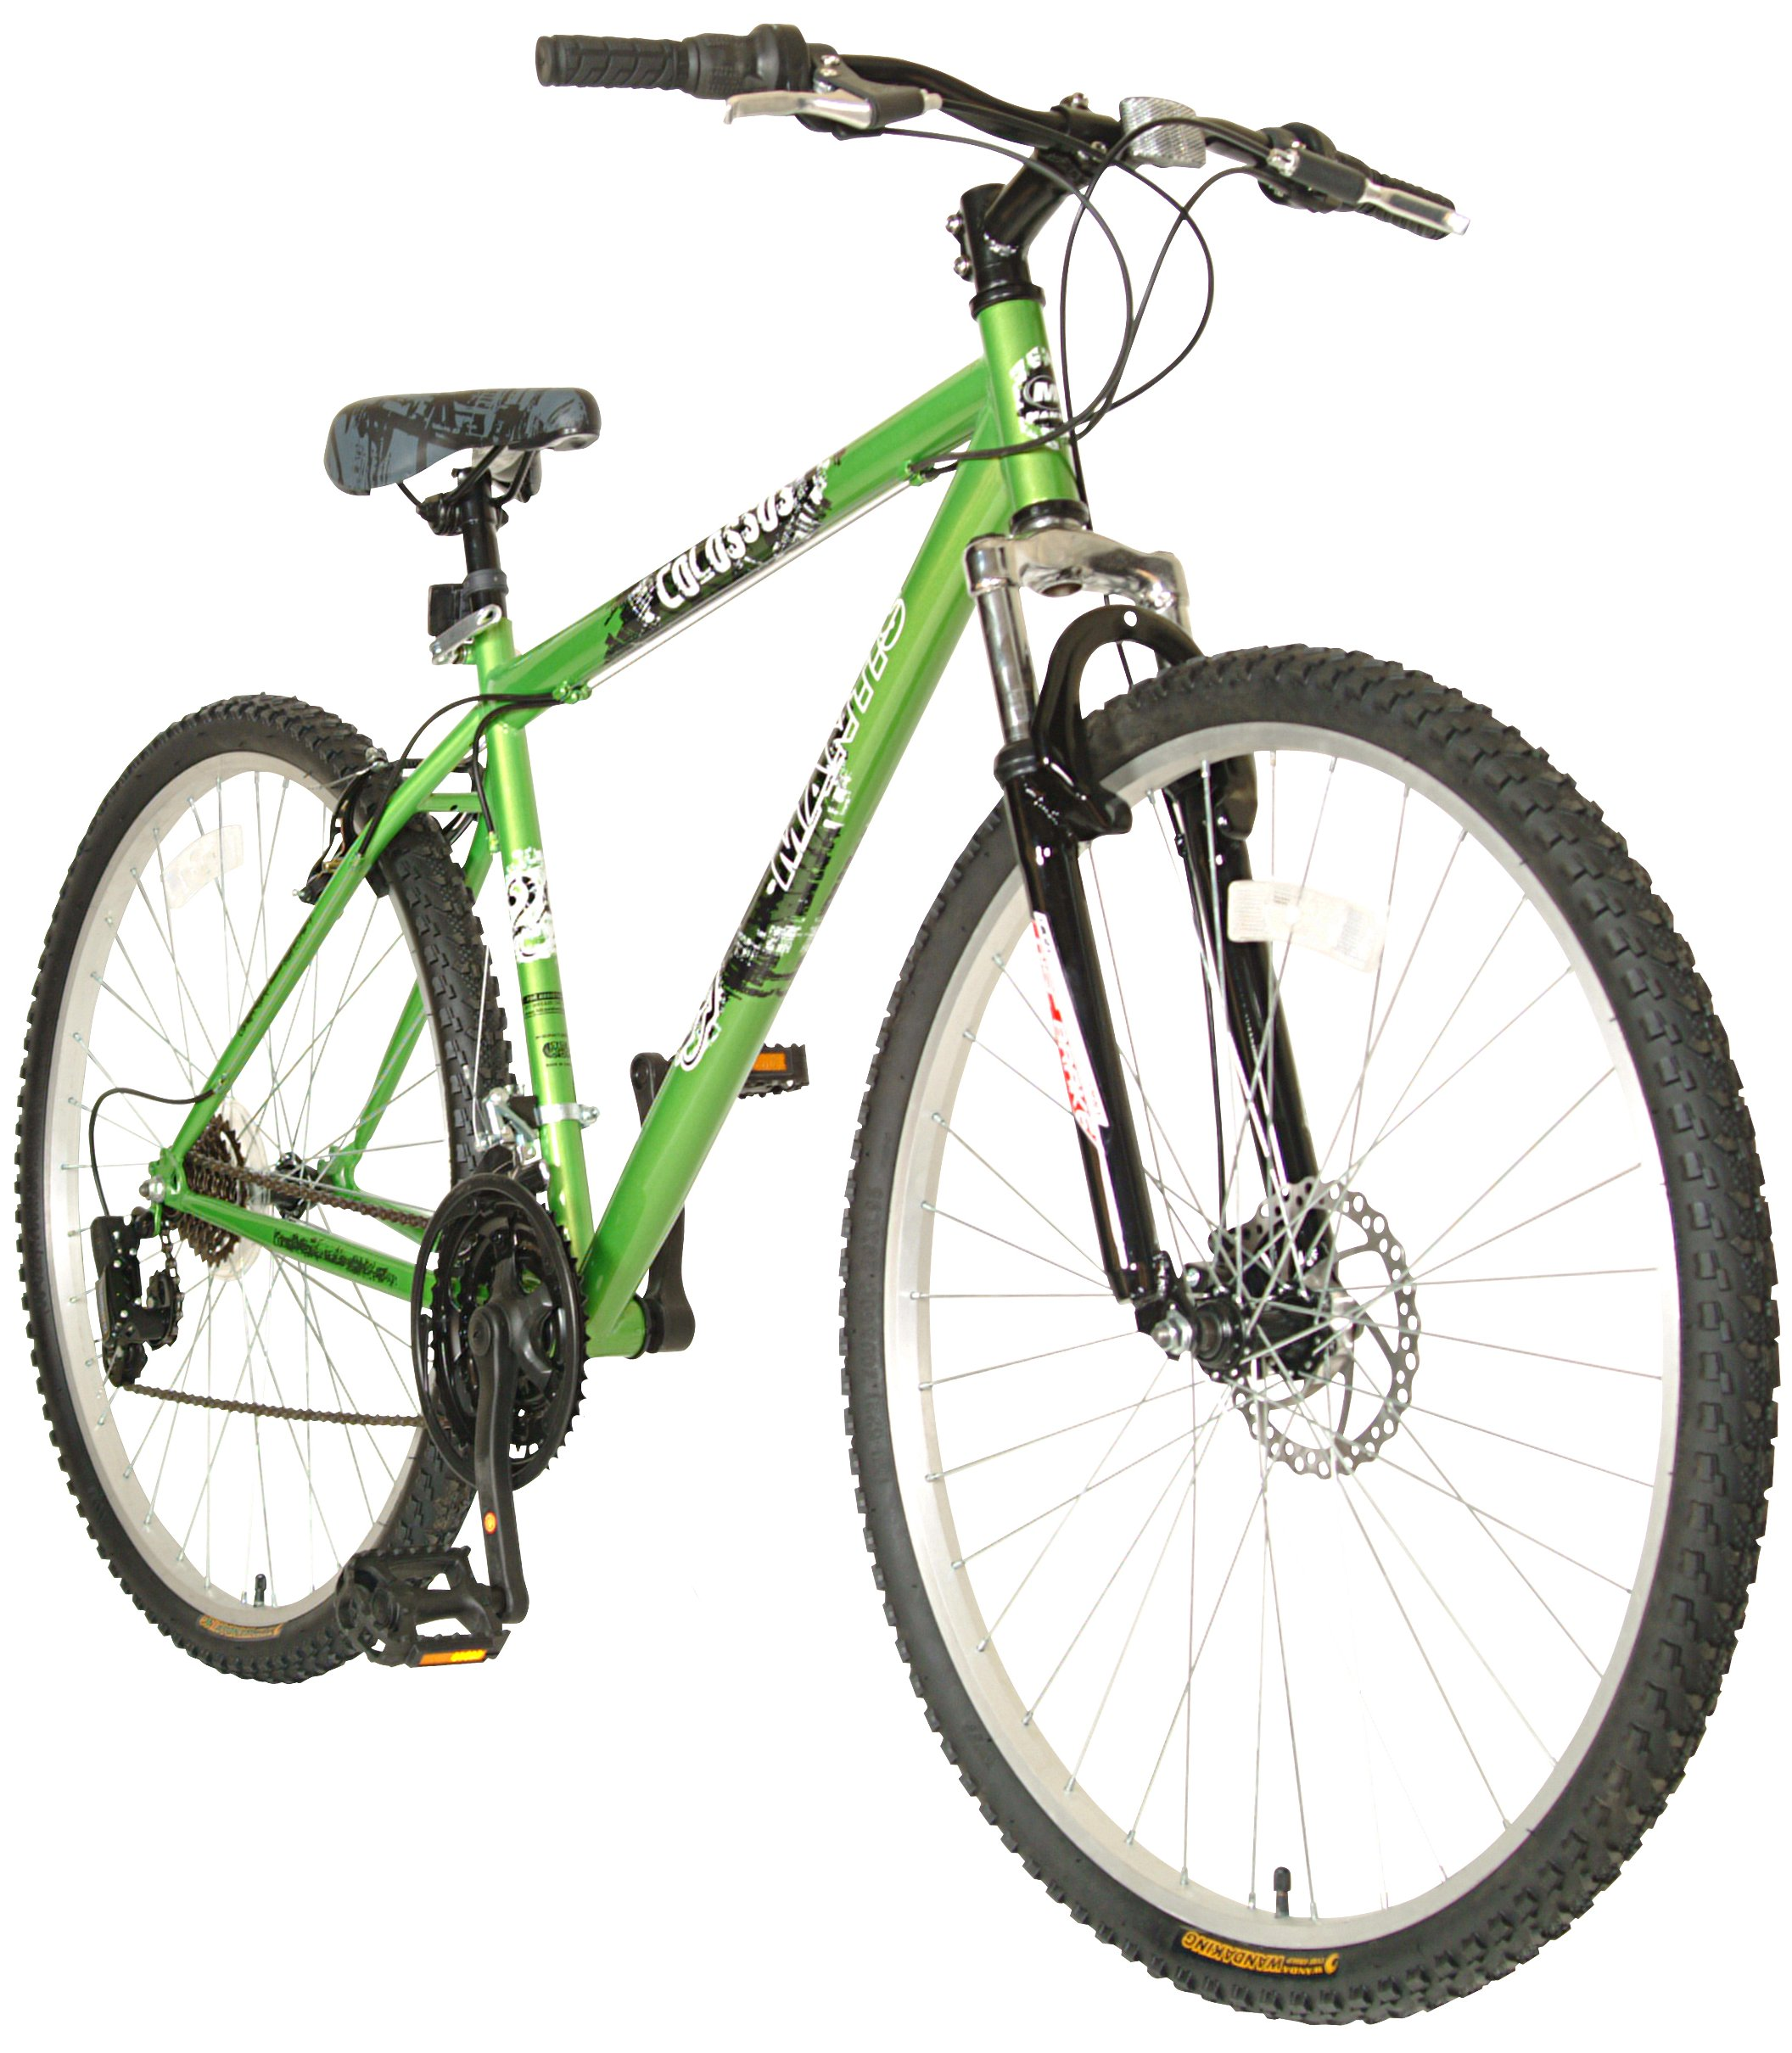 Mantis Colossus G0 29 Hardtail 21 Speeds MTB Bicycle